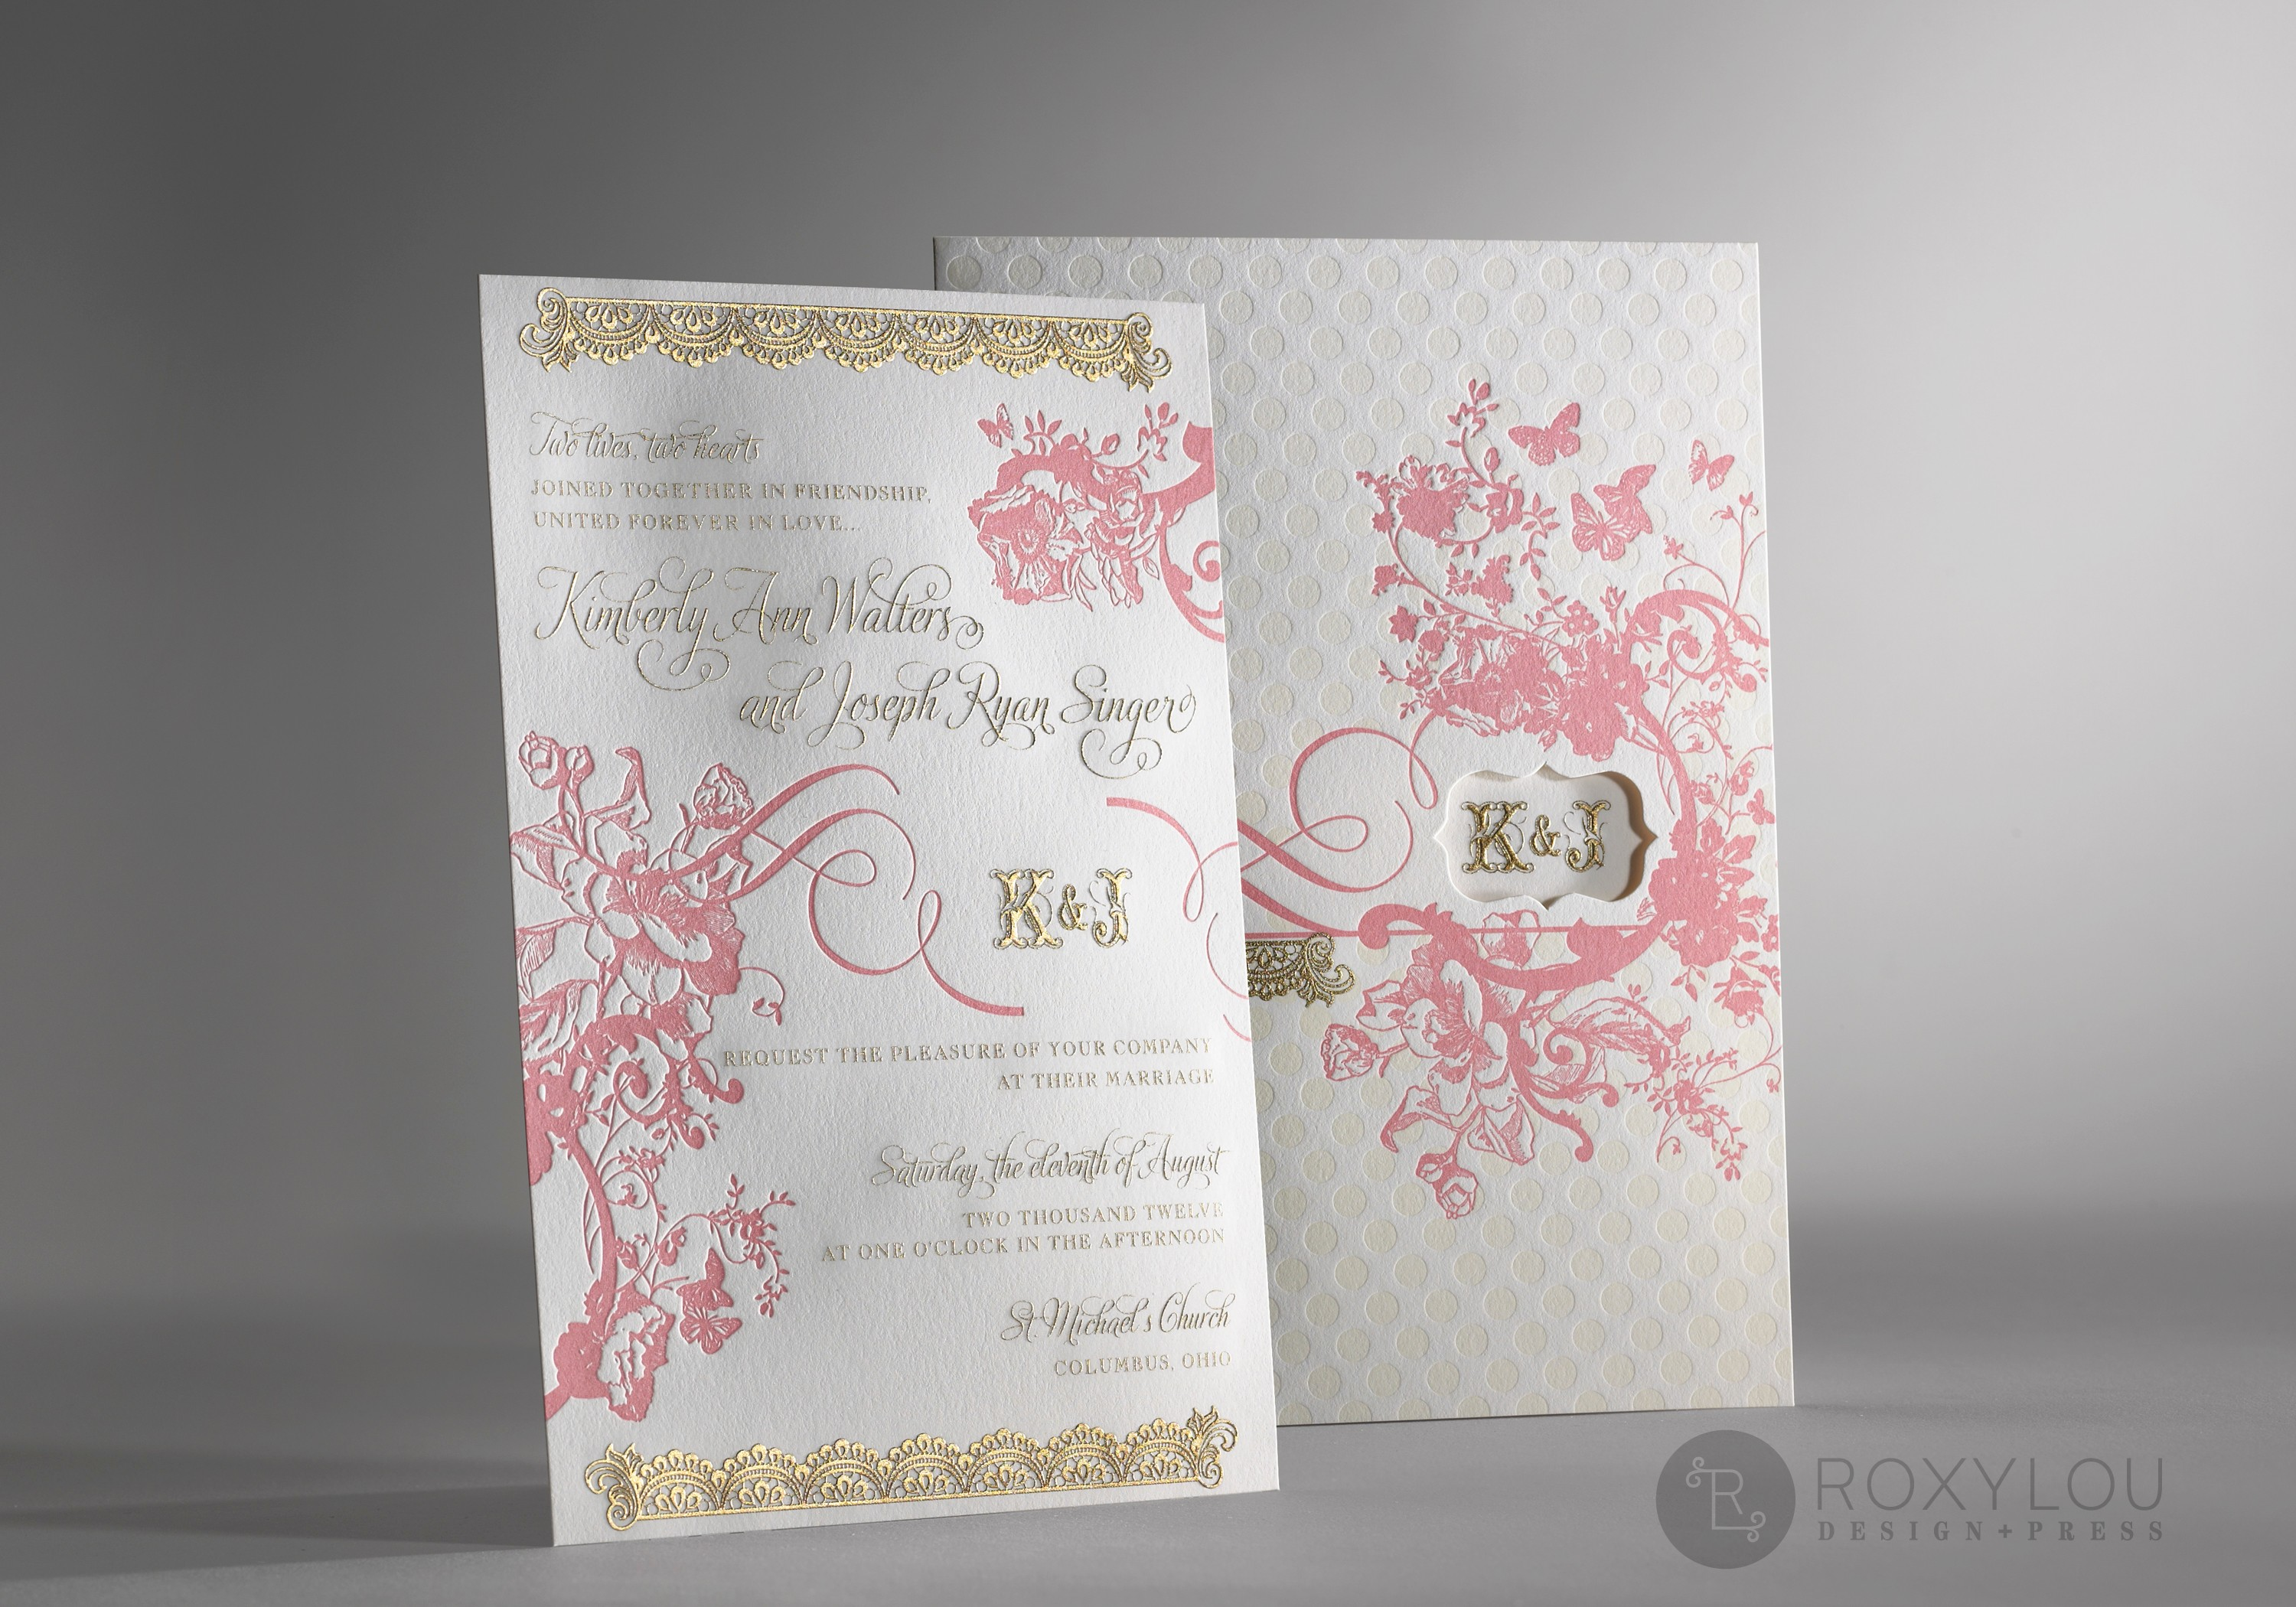 It's all in the details in this ornate, thoughtful design!  The stunning Enchanted wedding invitation suite features a debossed, letterpressed, and engraved booklet with a decorative keyhole cutout revealing the monogram on the invitation inside.  Stunning as pictured in red and gold or pink and gold, but this design can be created in your own color scheme.